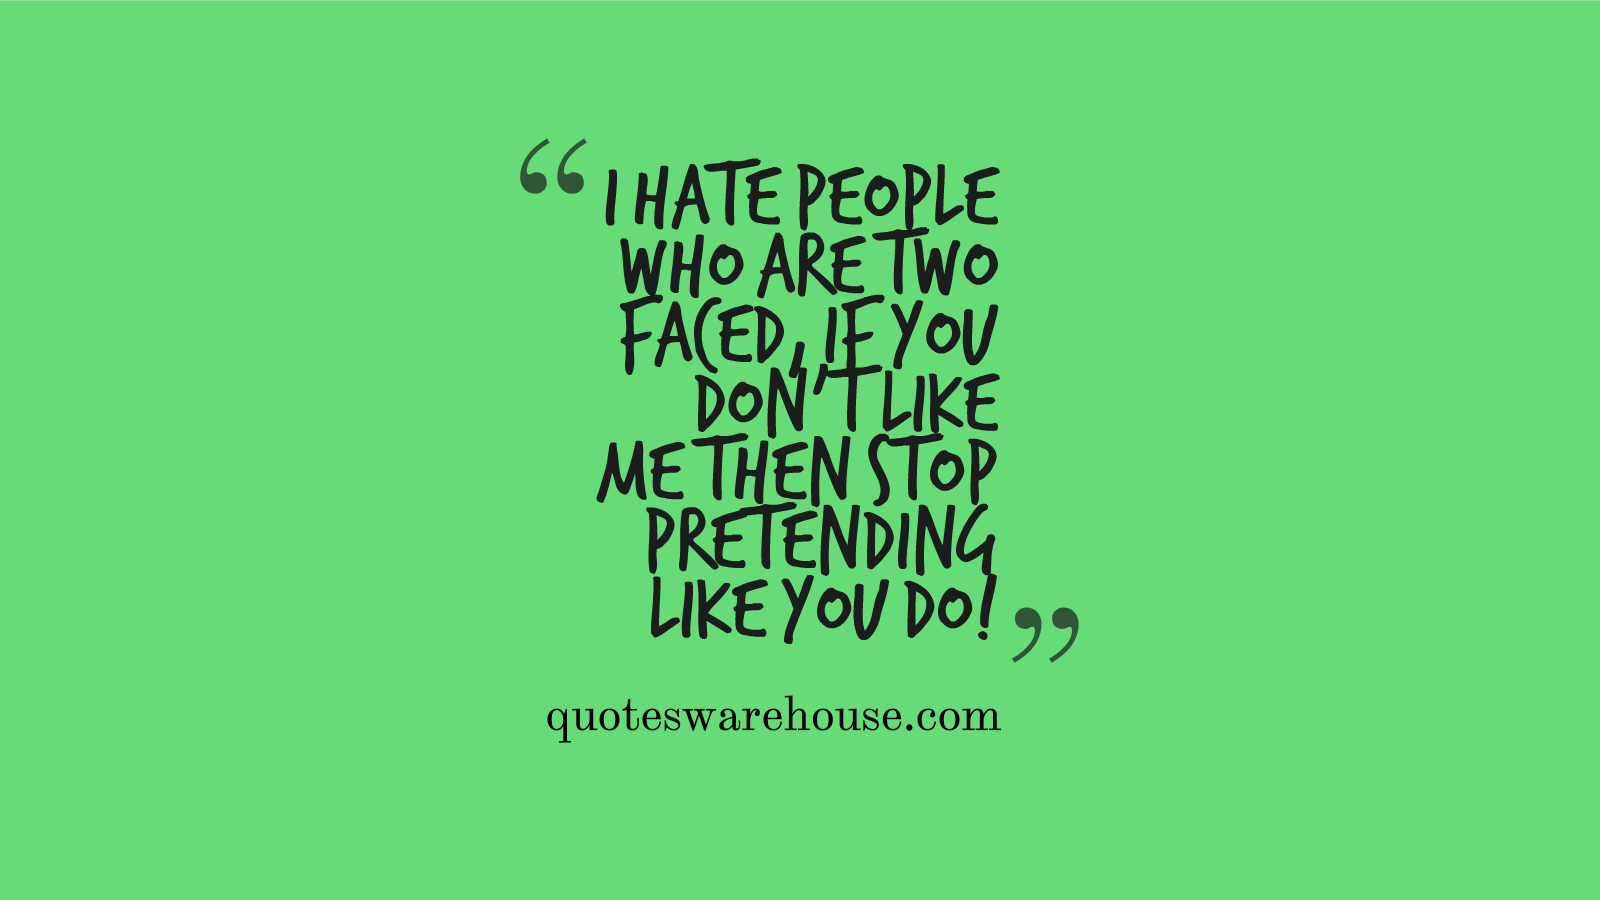 Friends Quotes: Two Faced Backstabbing Friends Quotes. QuotesGram